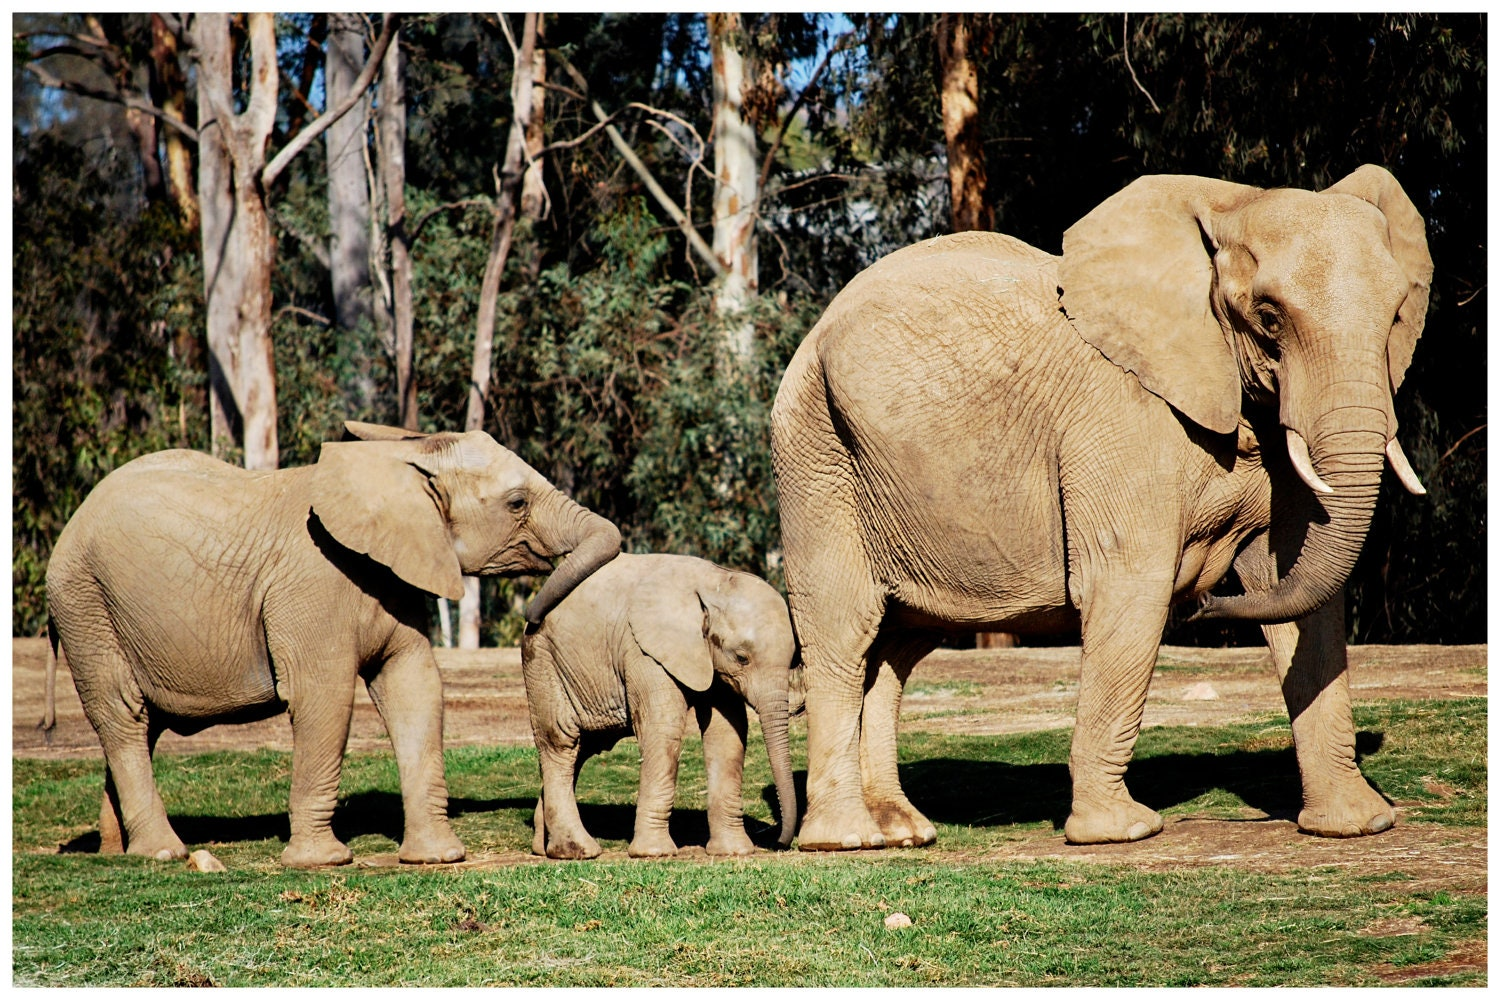 Elephant Family, World Elephant Day Fundraiser